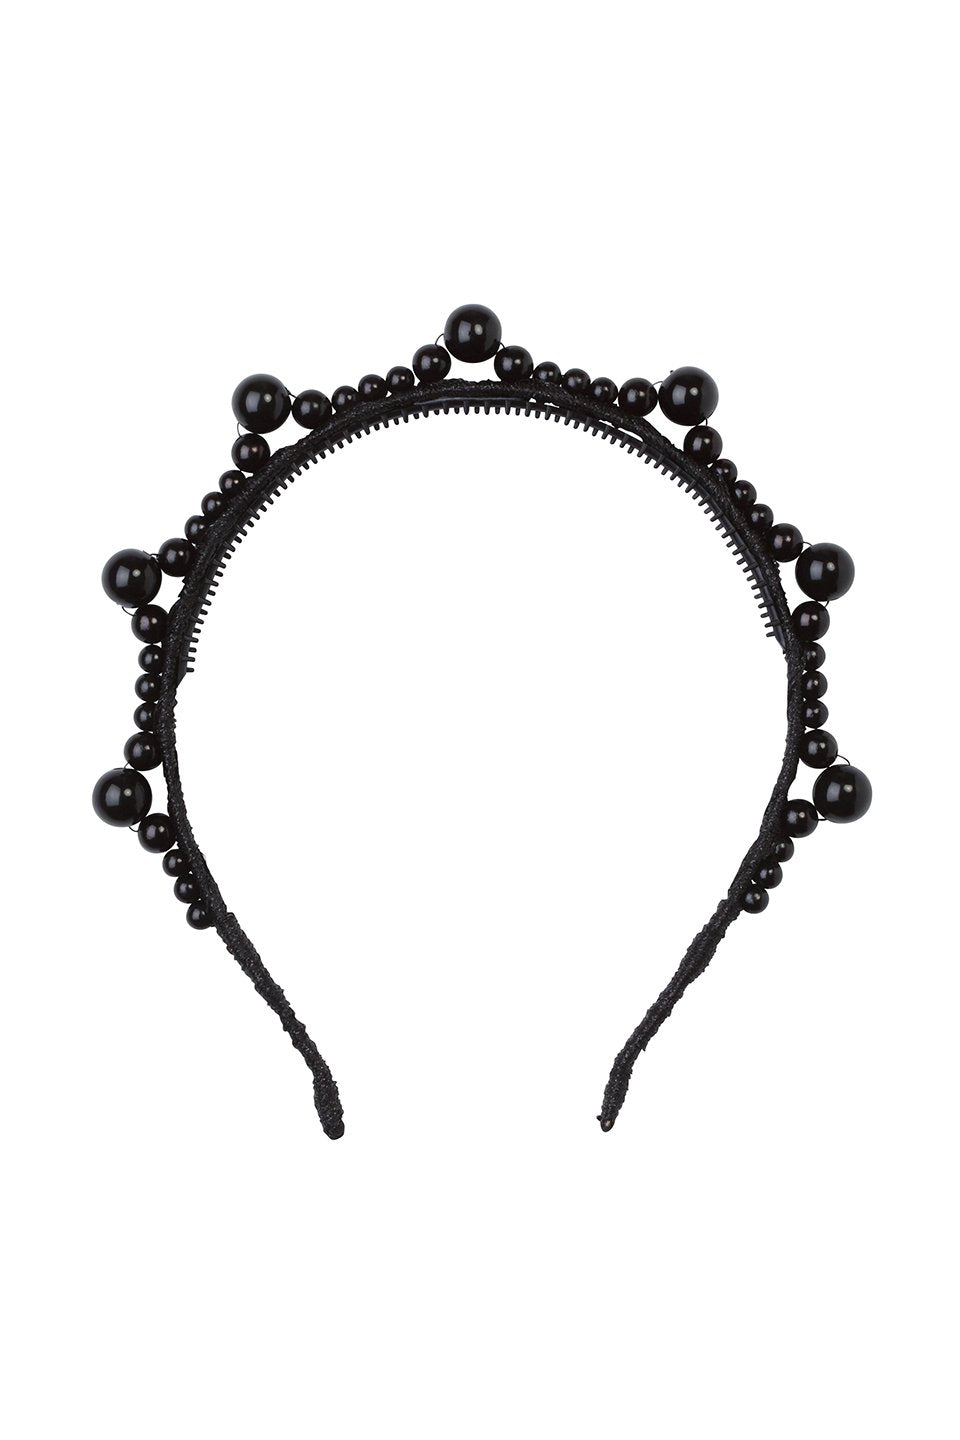 Triple Cluster Pearl Headband - Black/Black Pearls - PROJECT 6, modest fashion